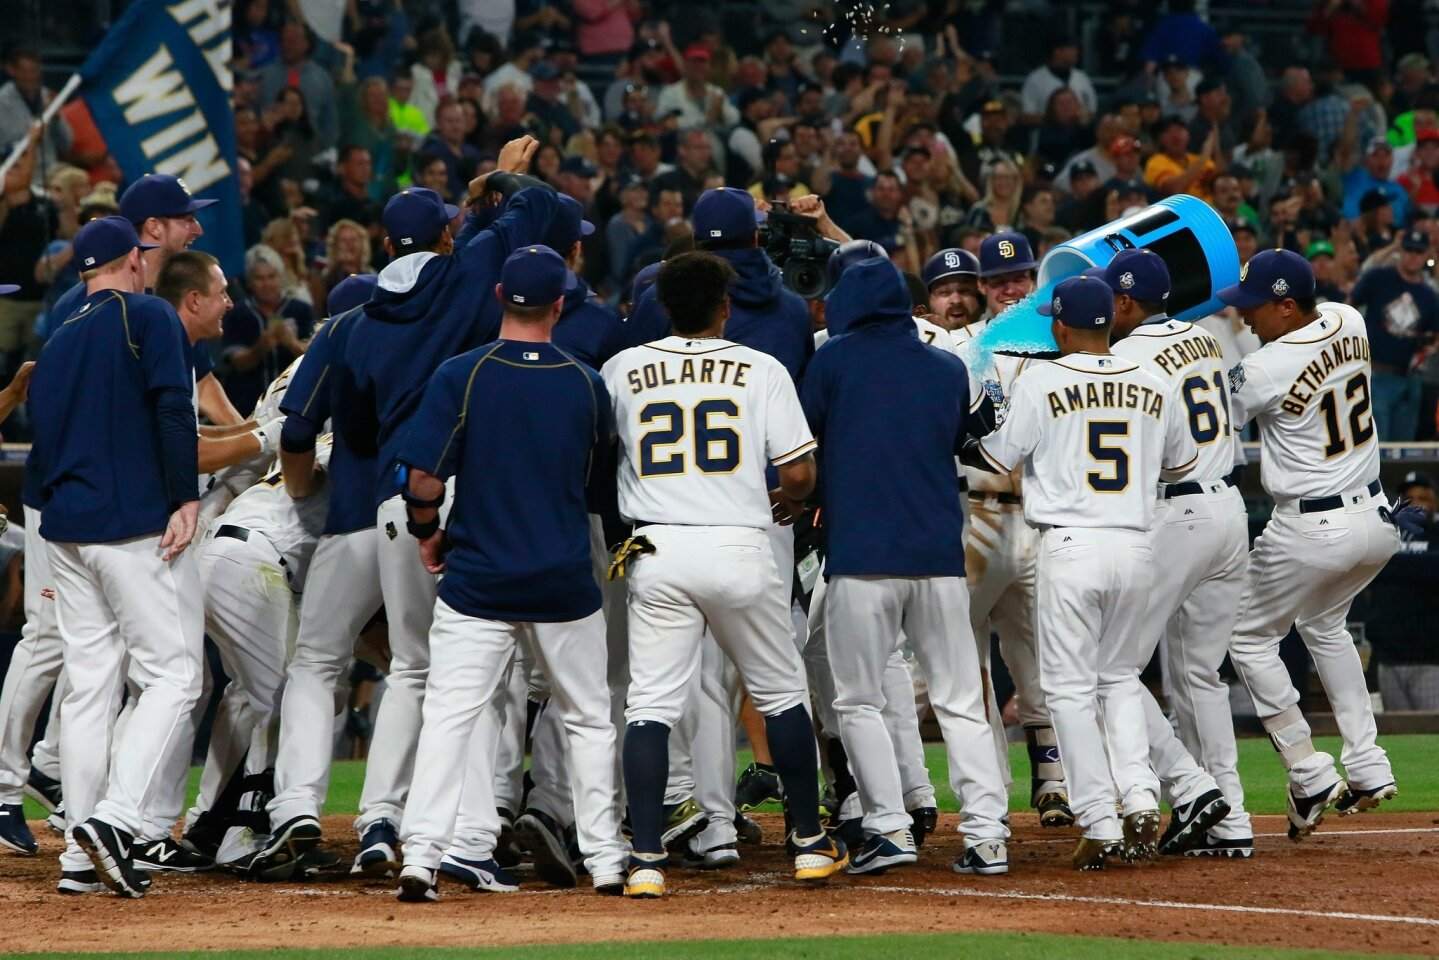 The Padres celebrate after Melvin Upton Jr. hit the winning home run against the Yankees Saturday night at Petco Park.